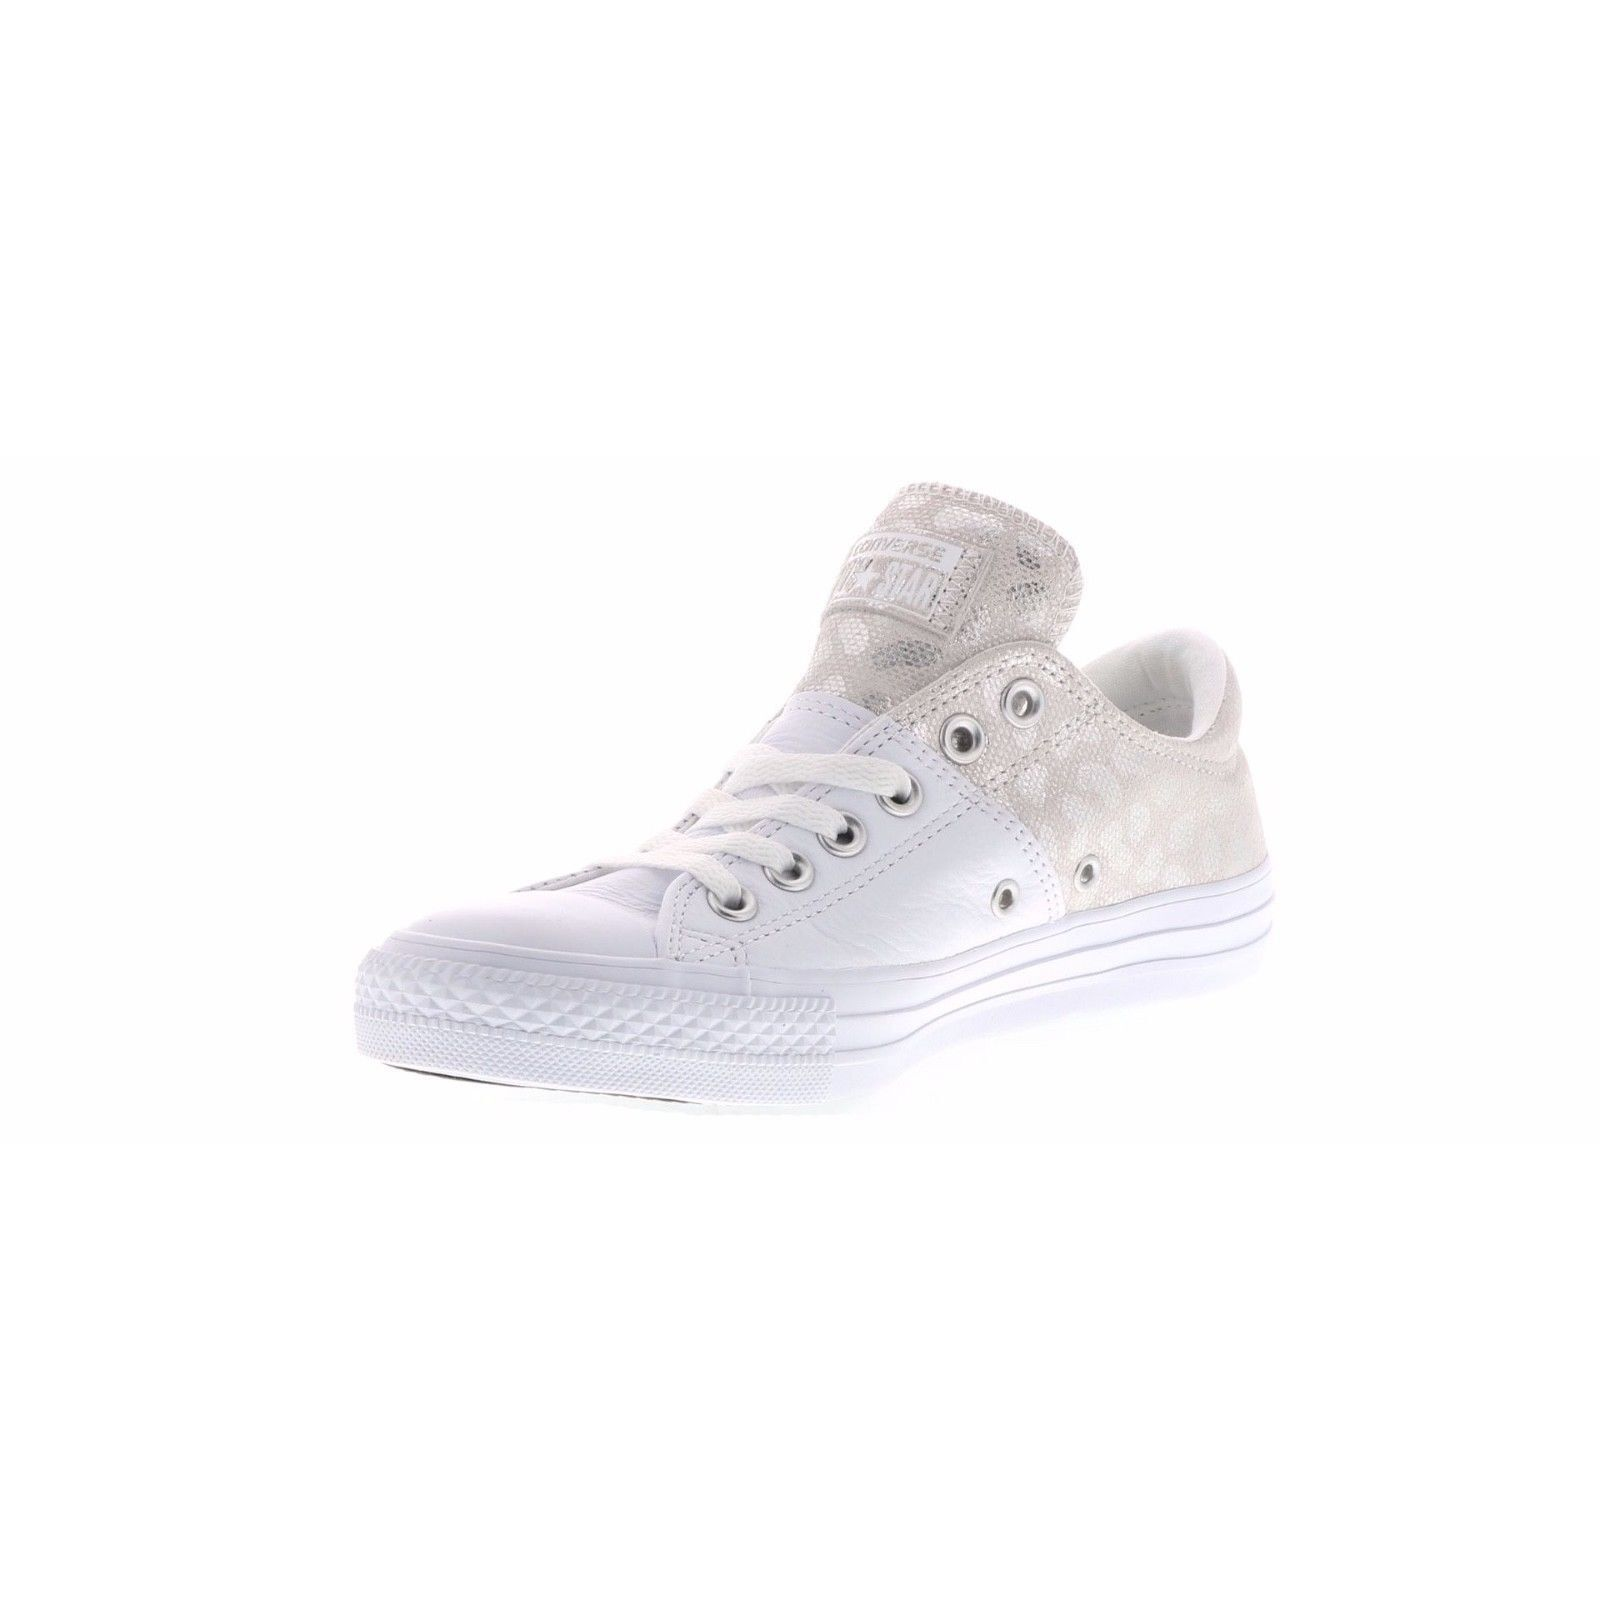 CONVERSE ALL STAR CHUCK TAYLOR MADISON OX OX MADISON LOW WOMEN Schuhe Weiß 555830C SZ 9 NEW 099421